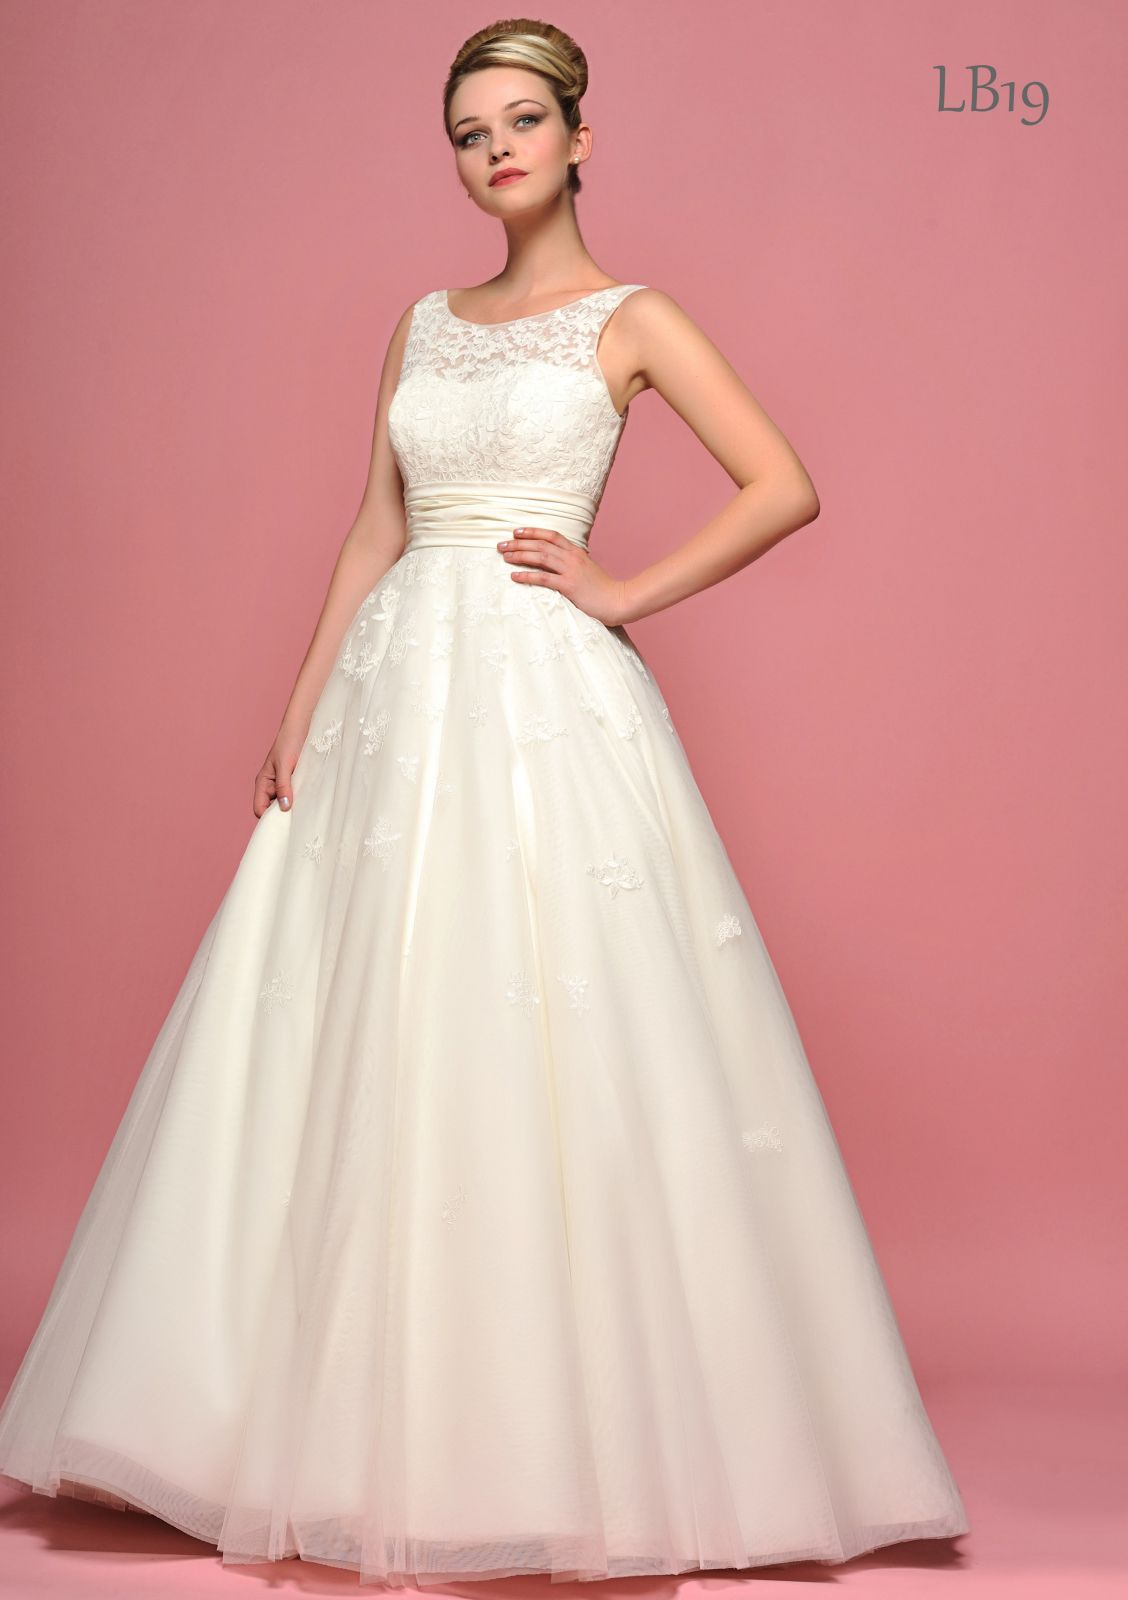 I tried this on!! Ball gown with scoop neck illusion top. Lou Lou ...